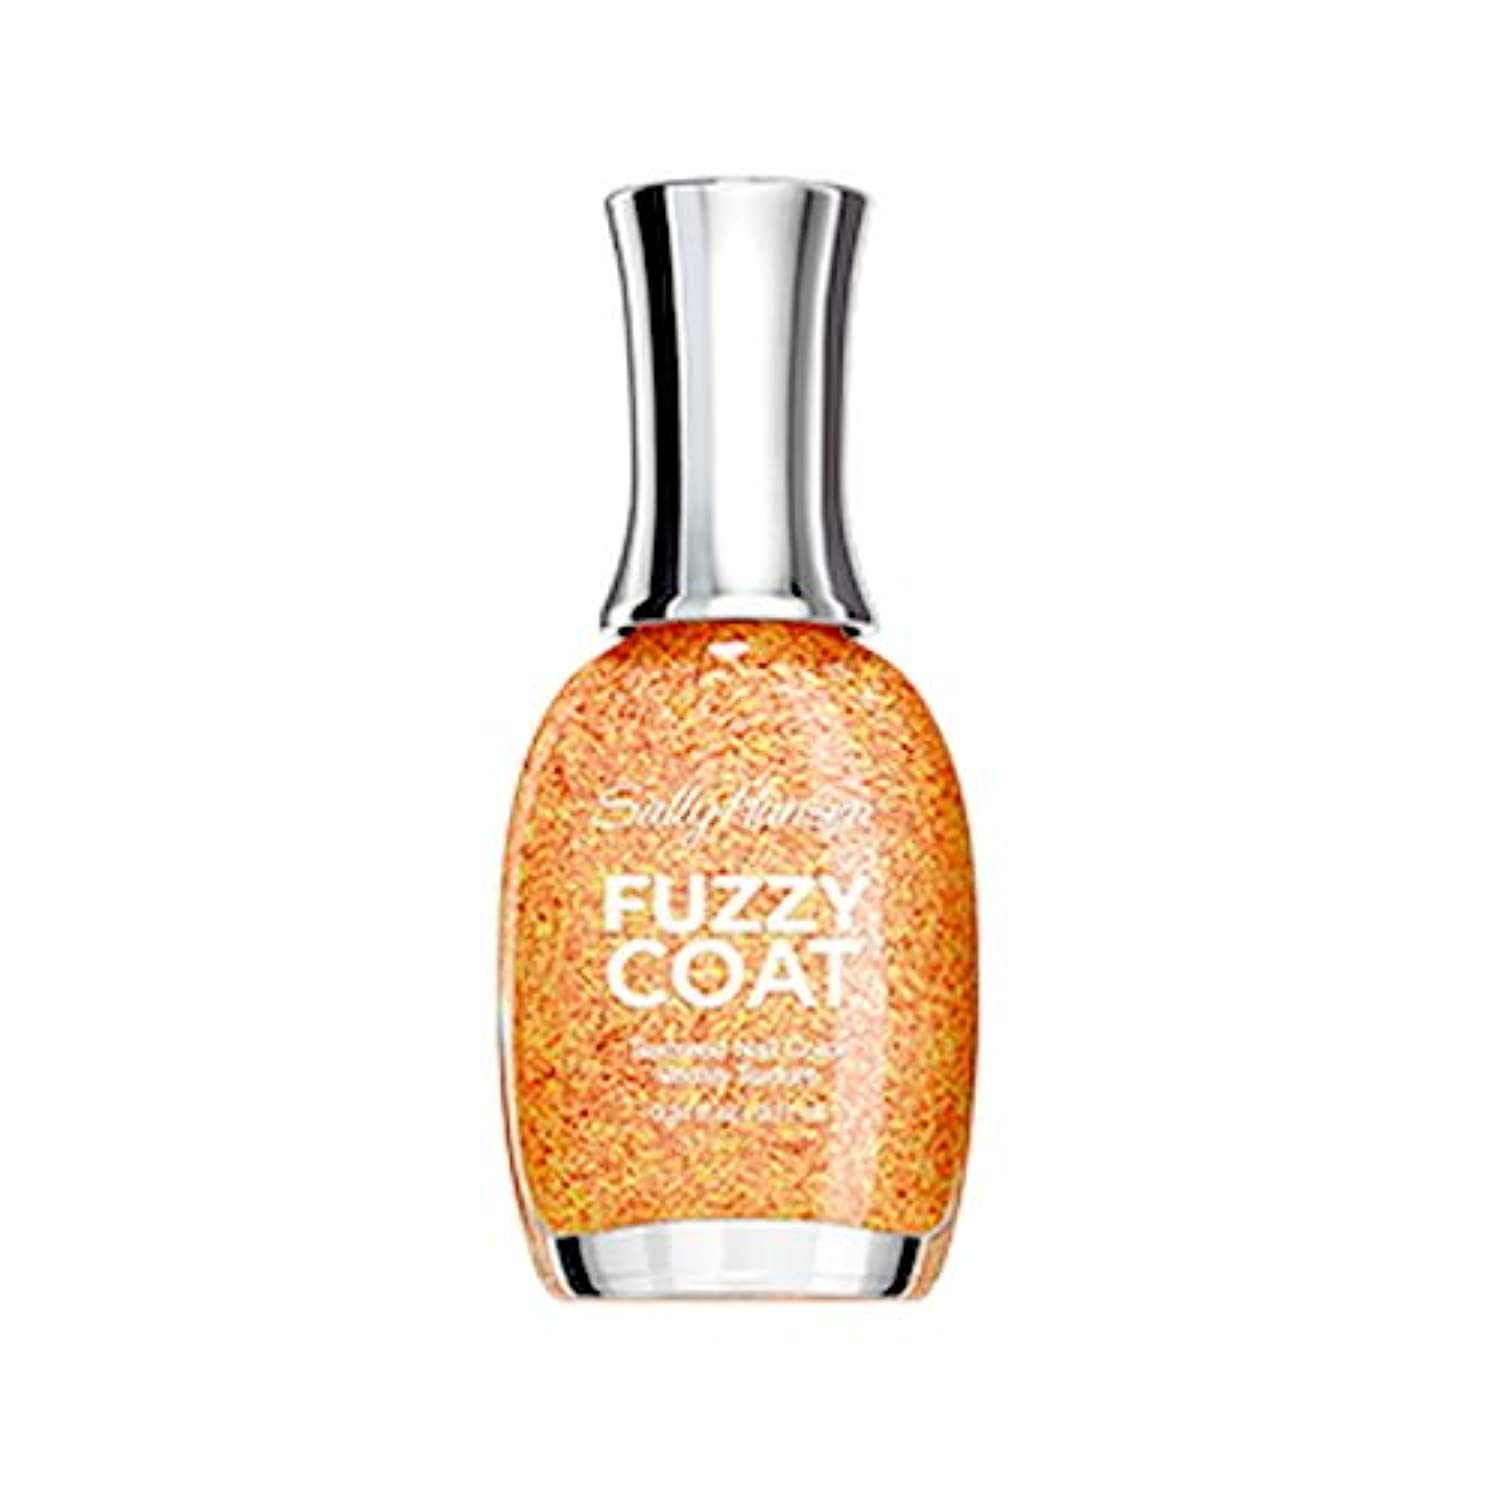 タンパク質独創的引退する(6 Pack) SALLY HANSEN Fuzzy Coat Special Effect Textured Nail Color - Peach Fuzz (並行輸入品)